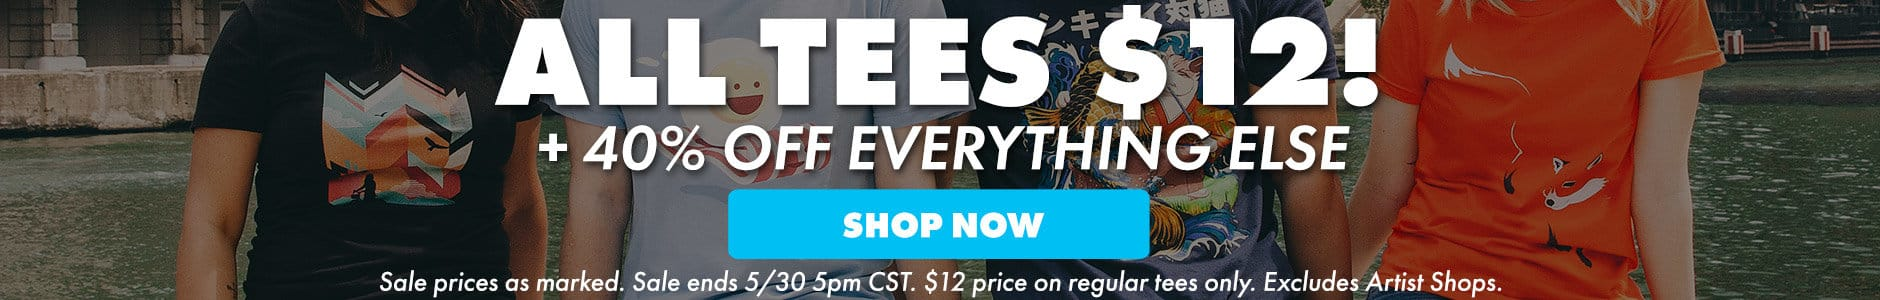 All tees $12! + 40% off everything else! Shop now. Sale prices as marked. Sale ends 5/30 5PM CST. $12 price on regular tees only. Excludes Artist Shops.